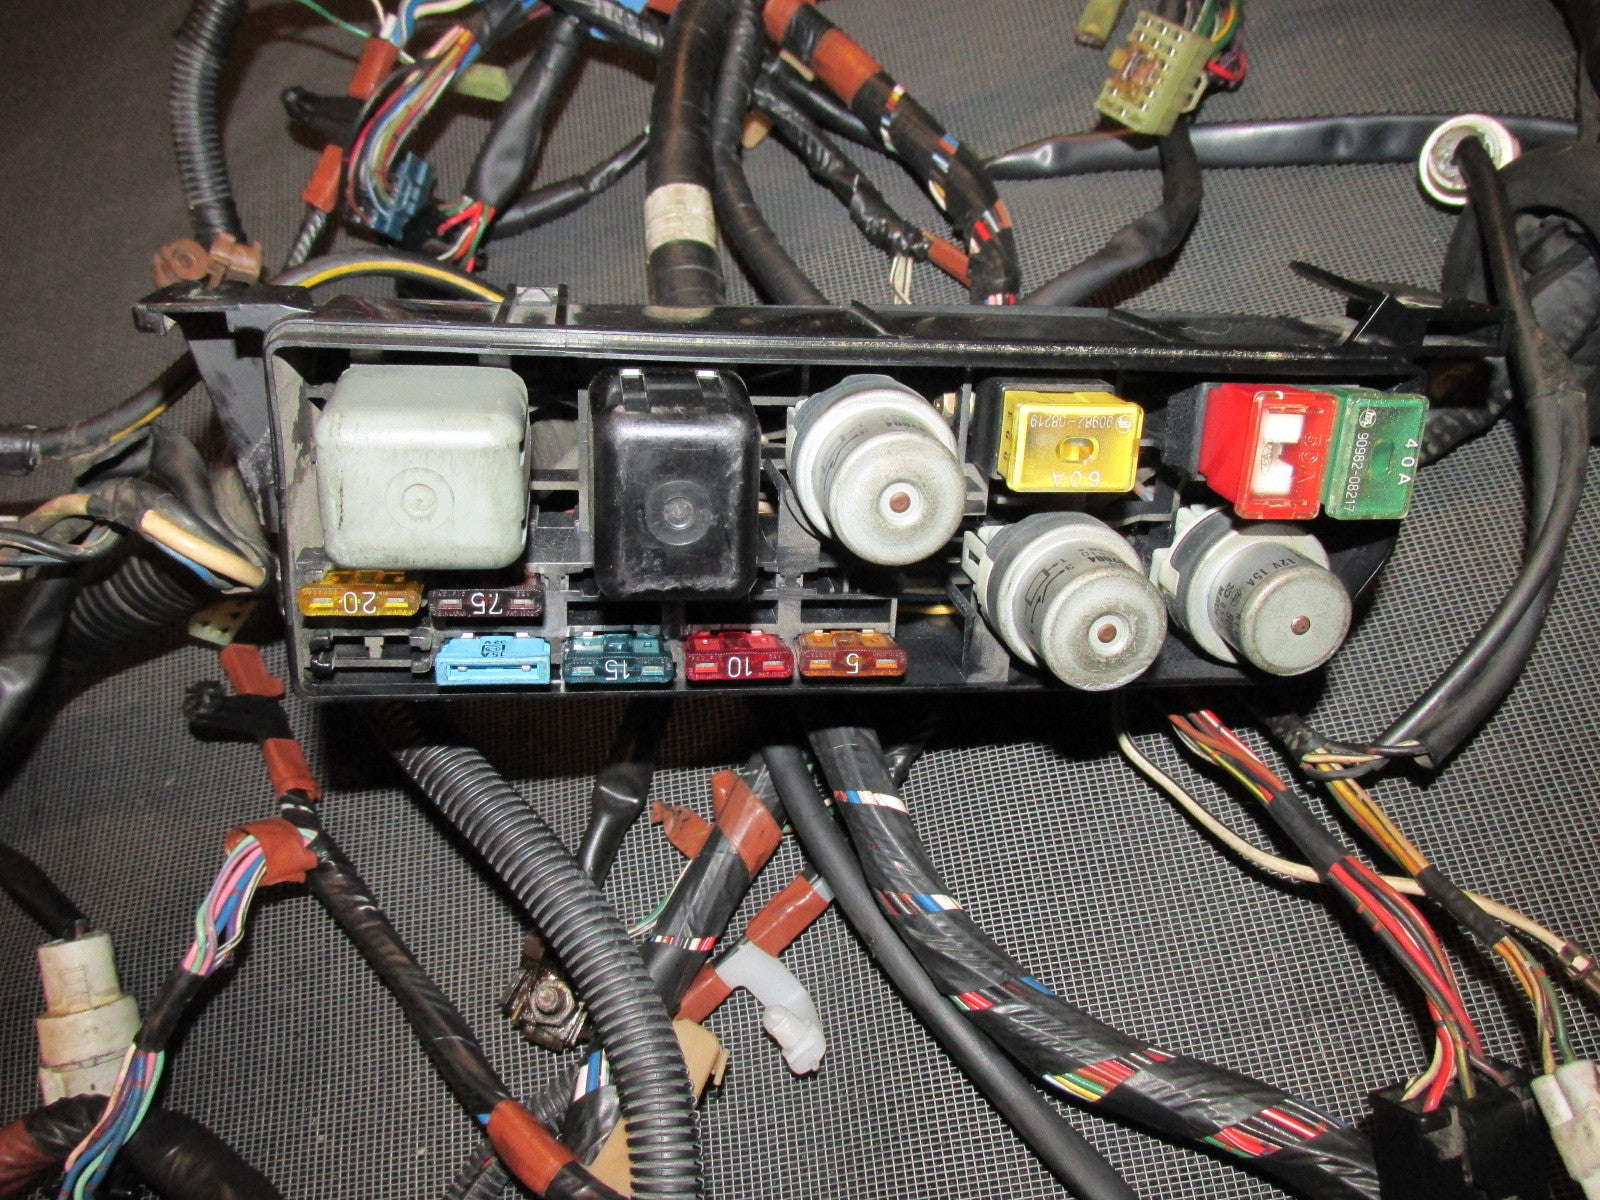 ... 87 88 89 Toyota MR2 OEM Engine Fuse Box Wiring Harness - Tail Light